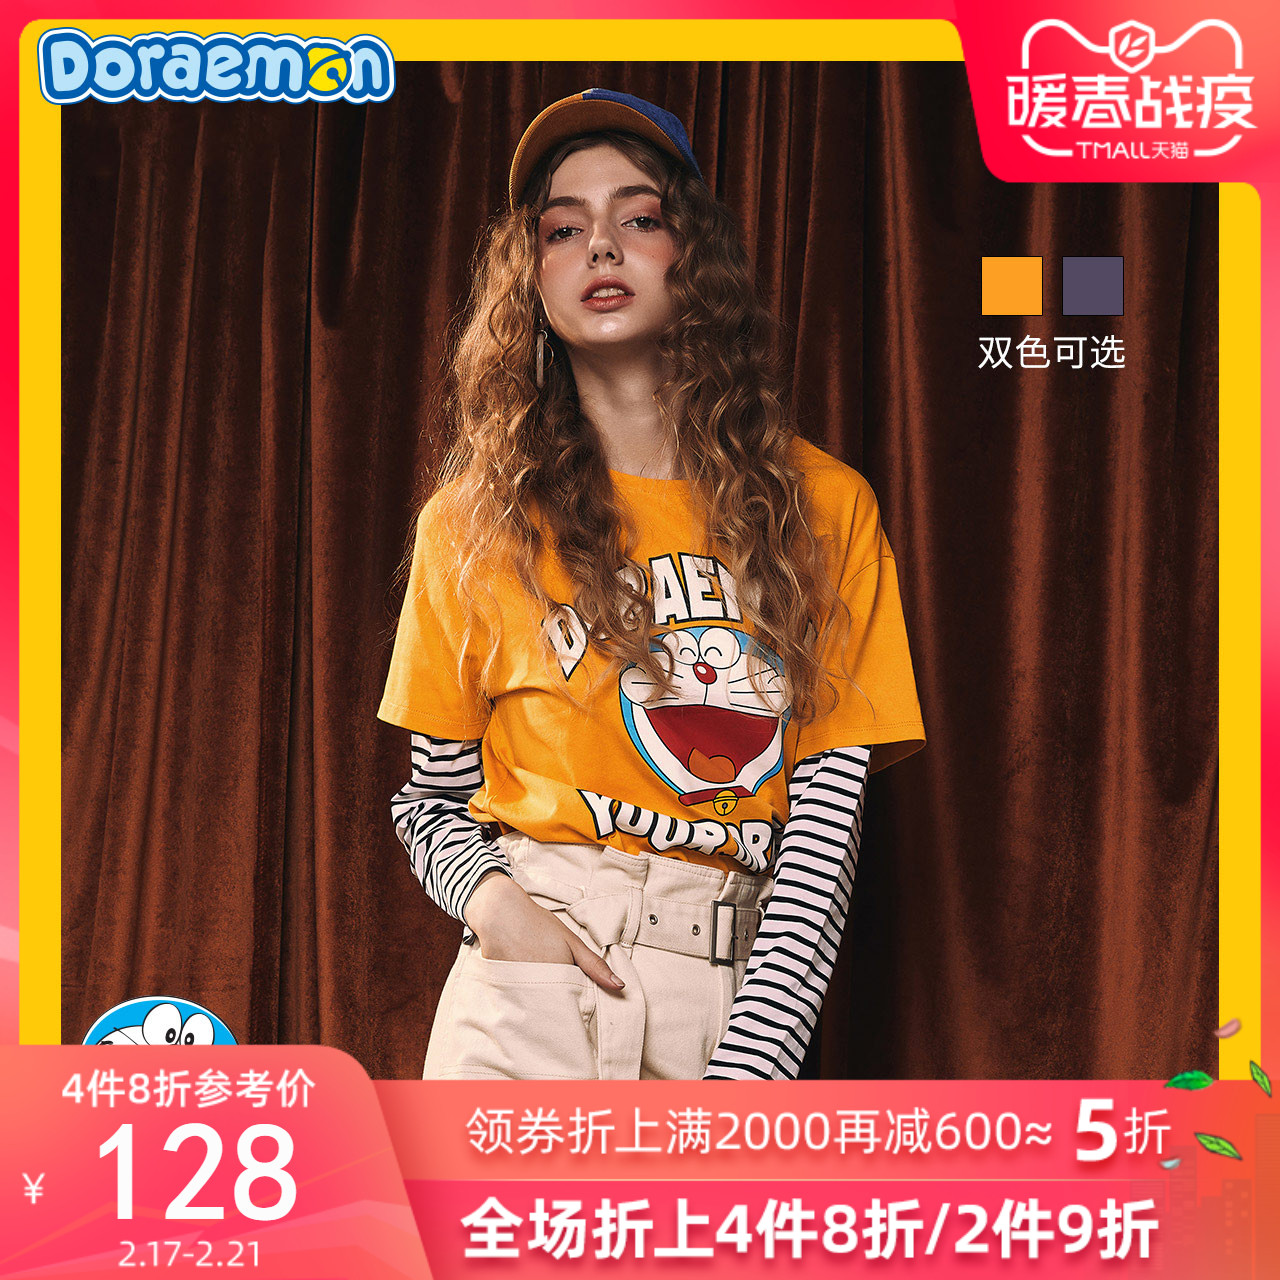 Doraemon co branded fake two long sleeve T-shirt women's new loose stripe fashion T-shirt in autumn 2019